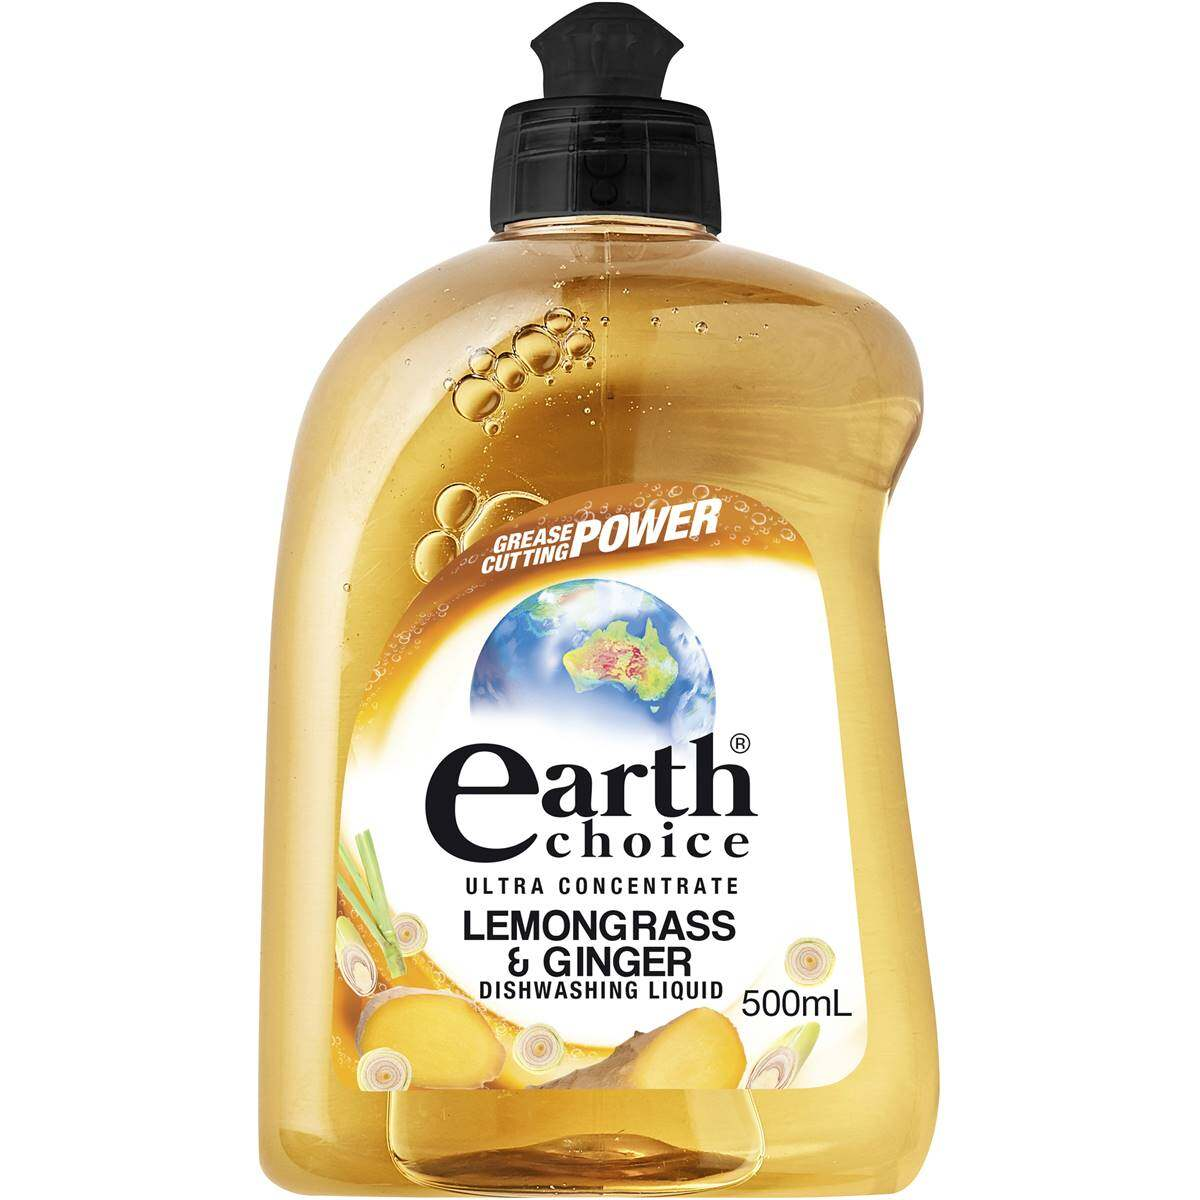 EARTH CHOICE LEMONGRASS & GINGER DISH CONCENTRATE 500ML